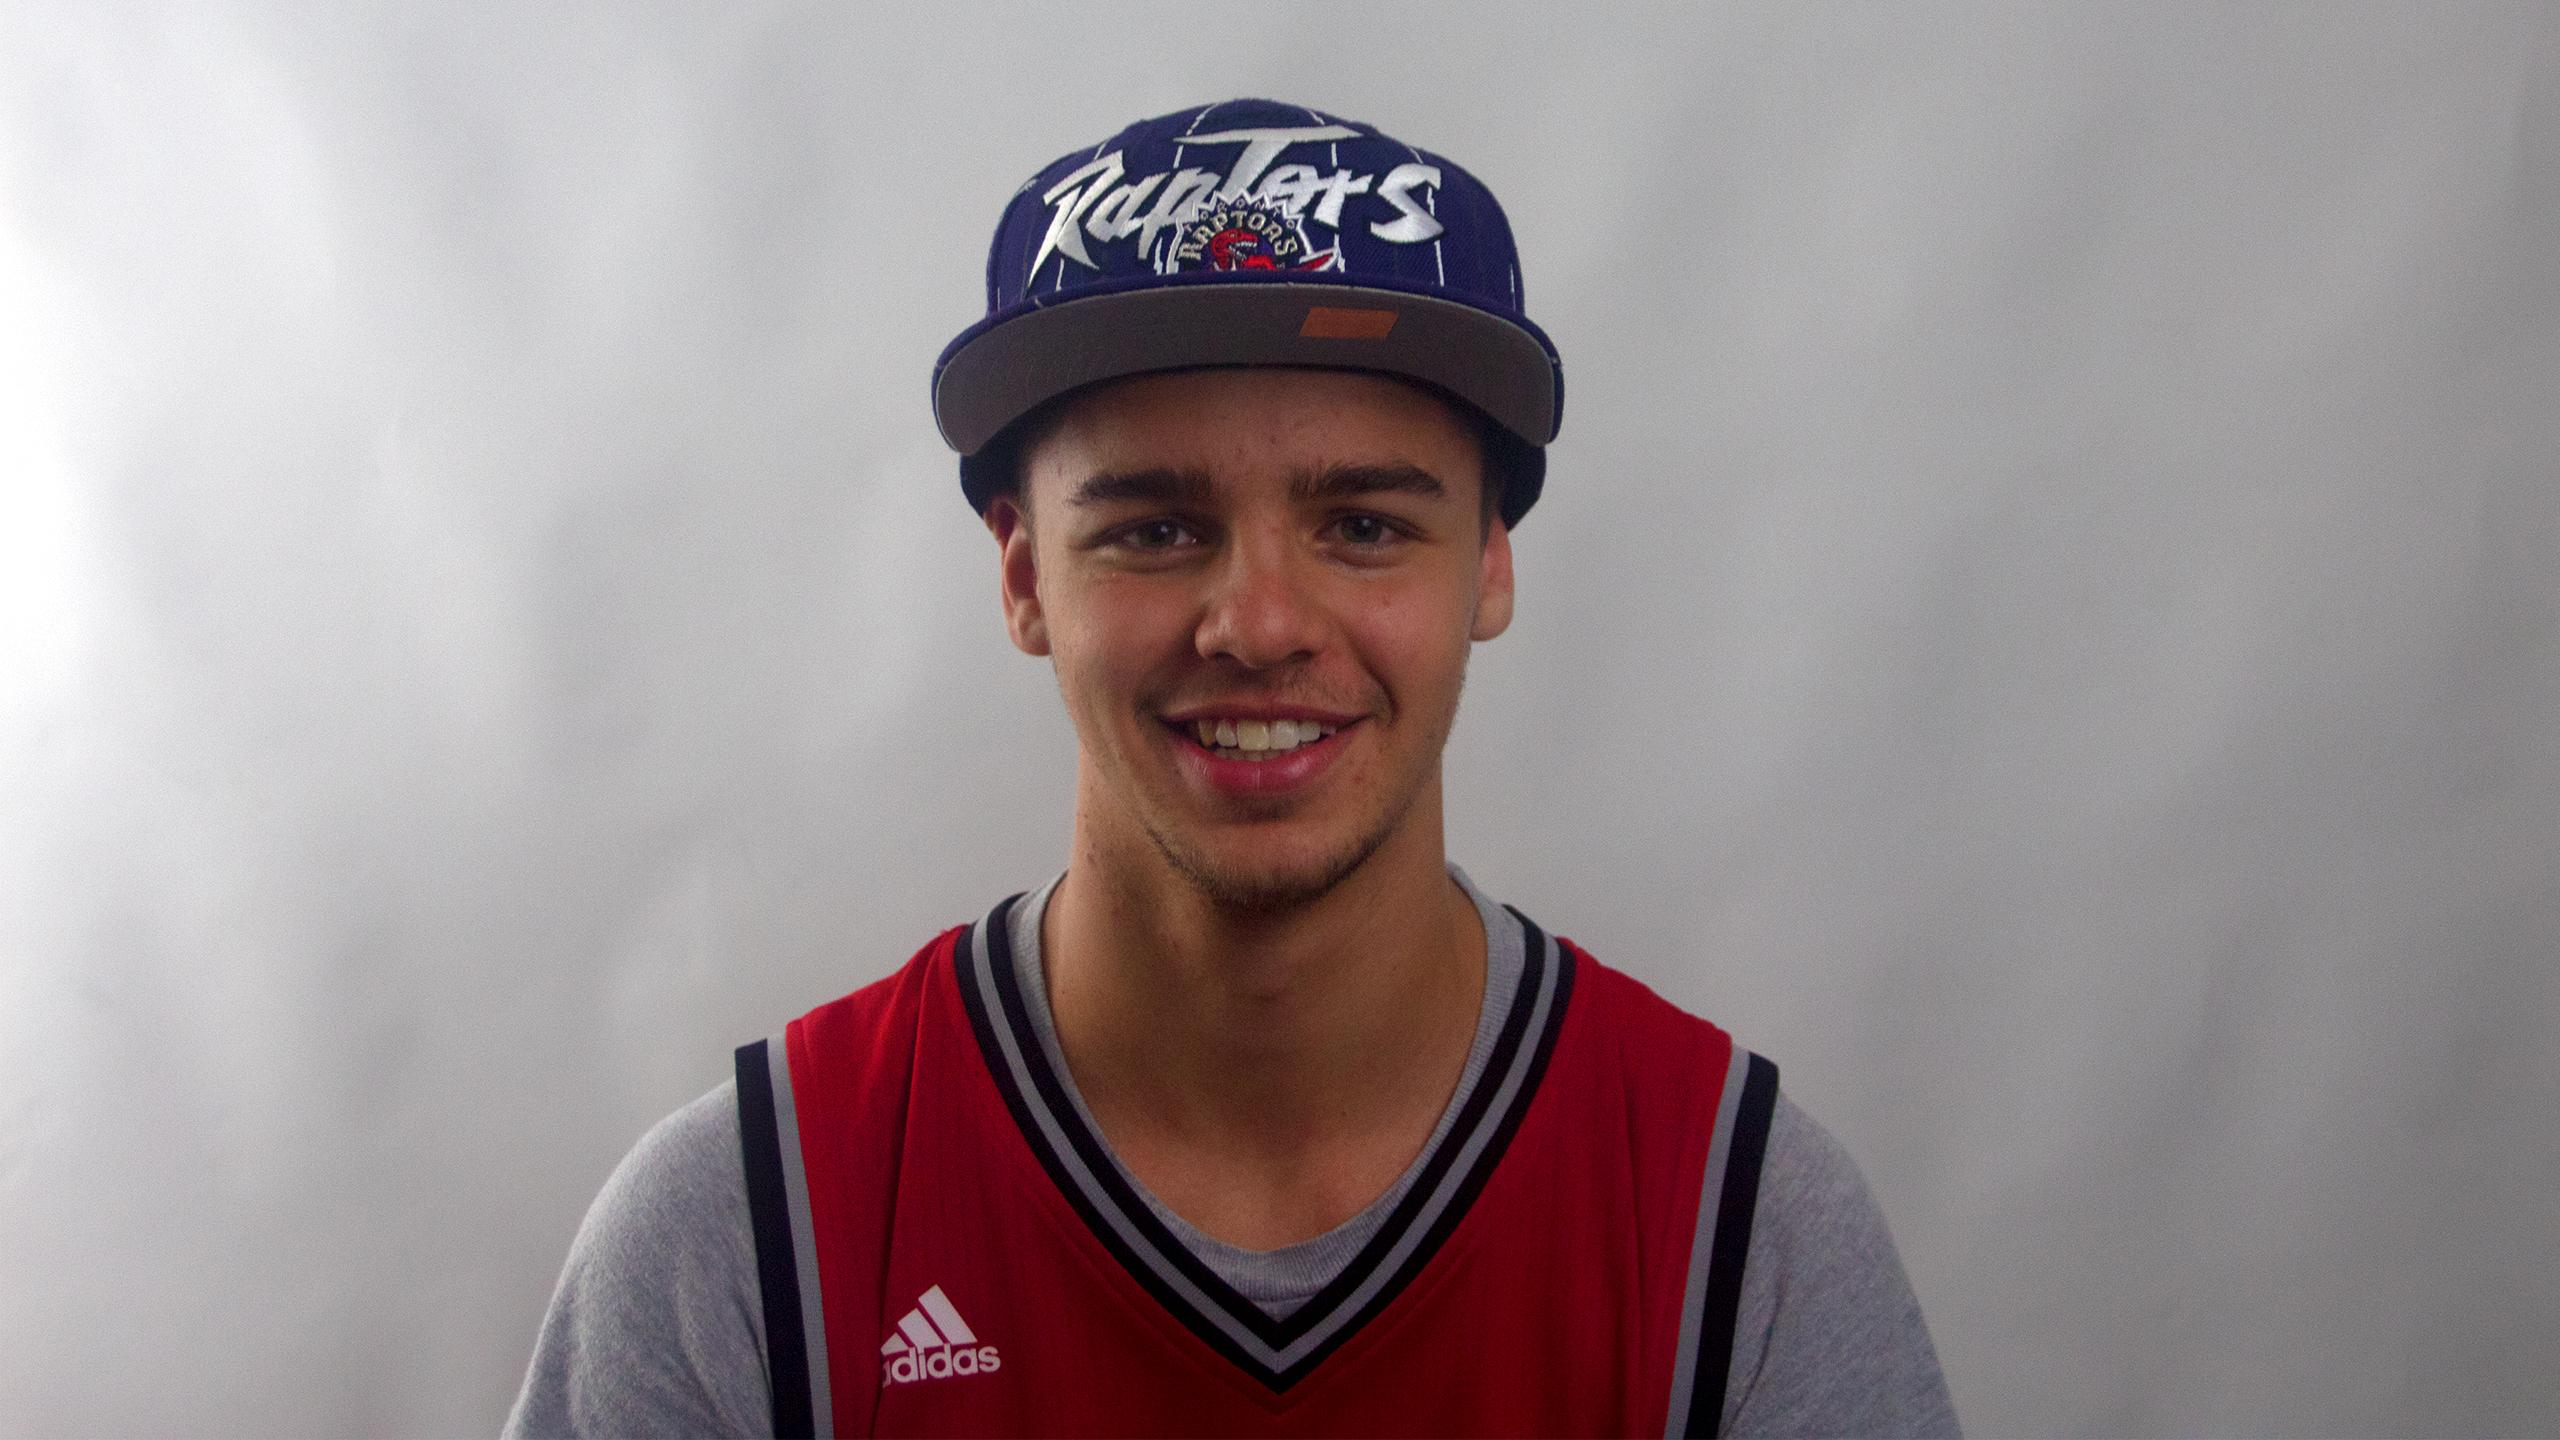 Eager first year university athlete wearing a raptors cap and jersey